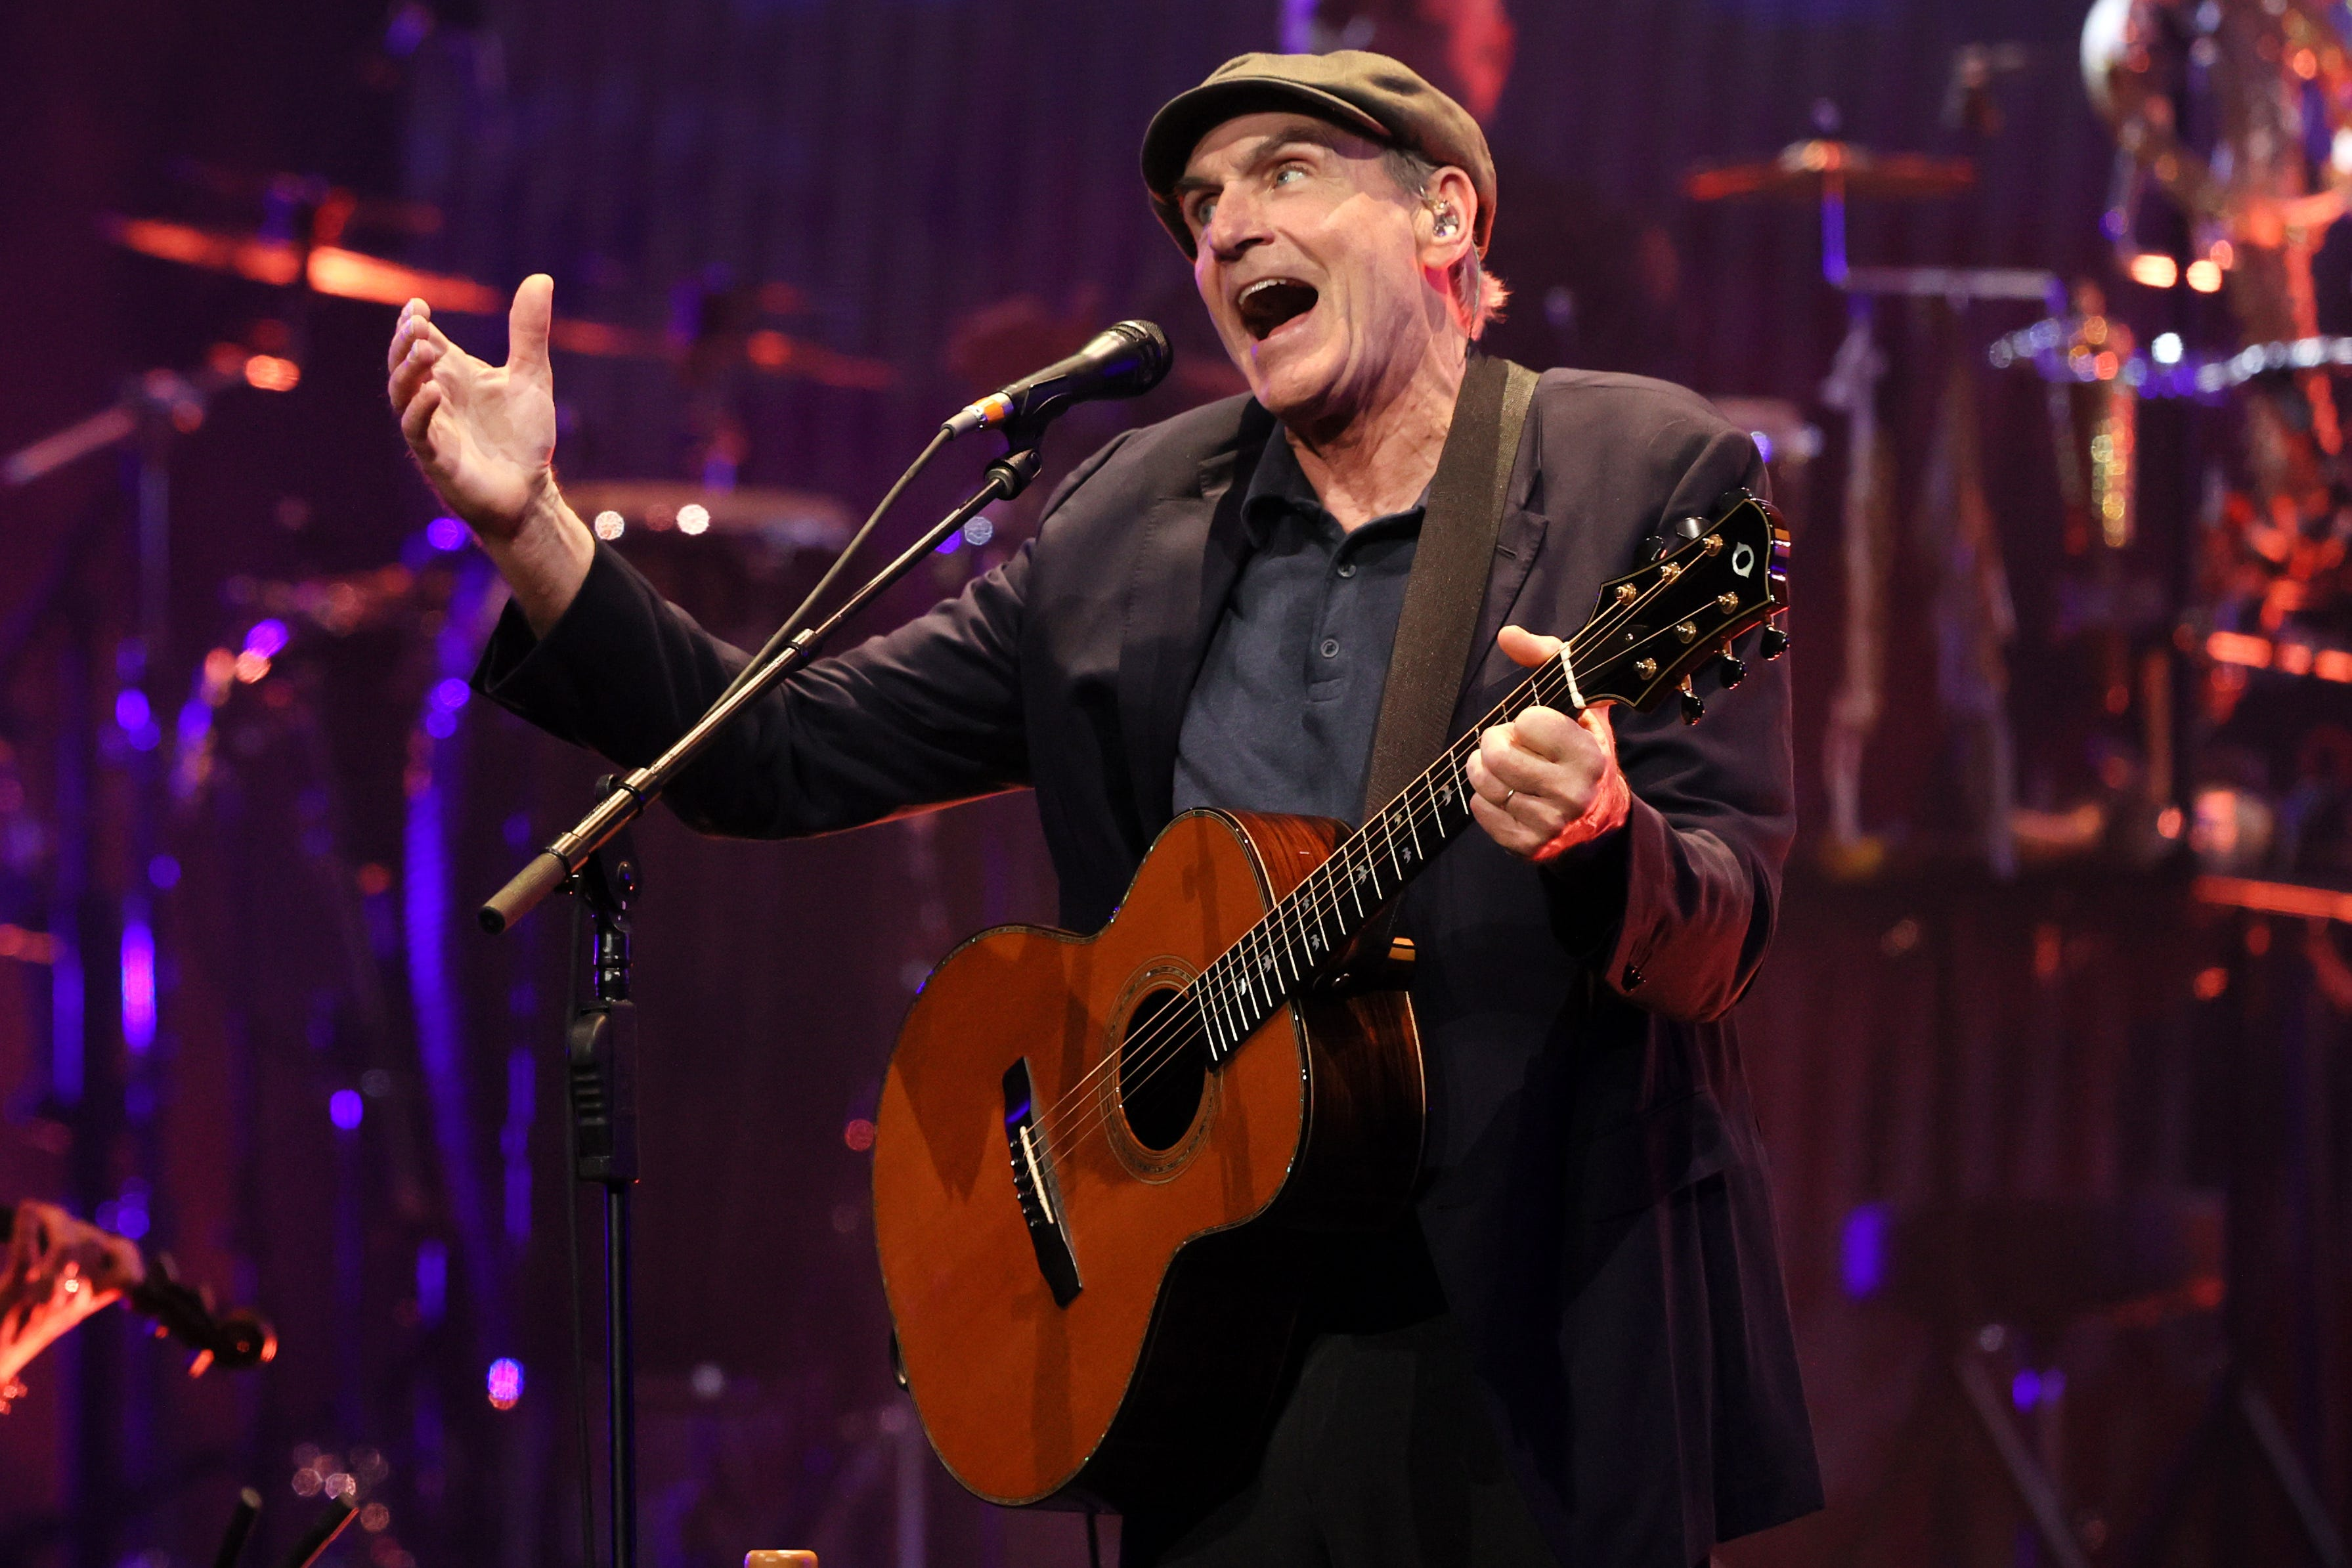 James Taylor, Jonas Brothers to require proof of vaccination at Jacksonville shows